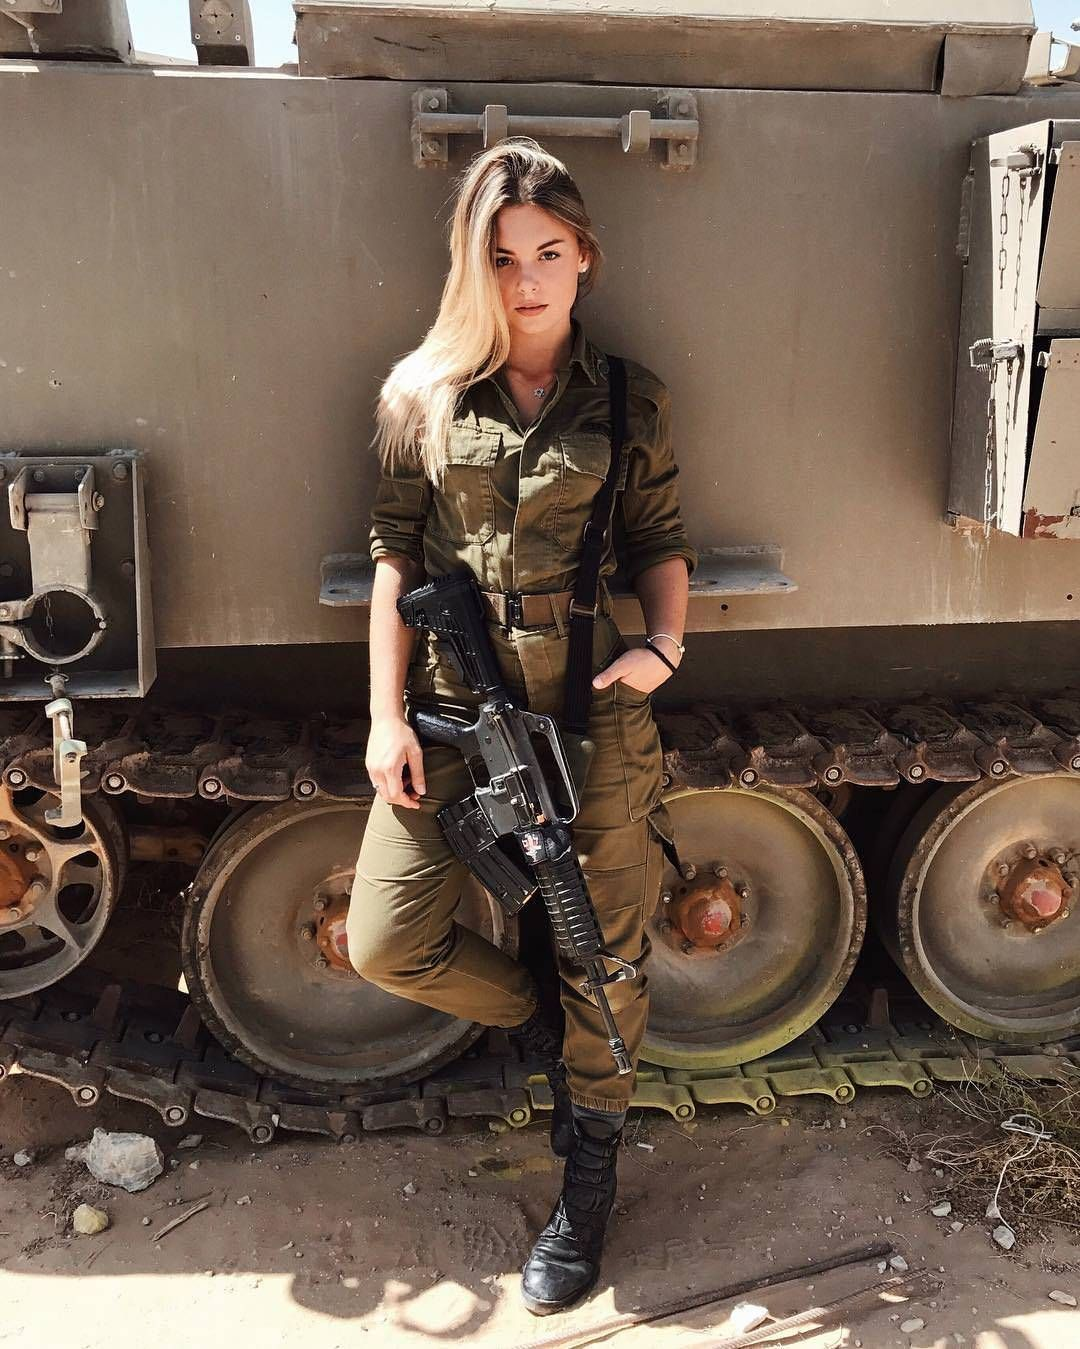 Hot military girls tumblr